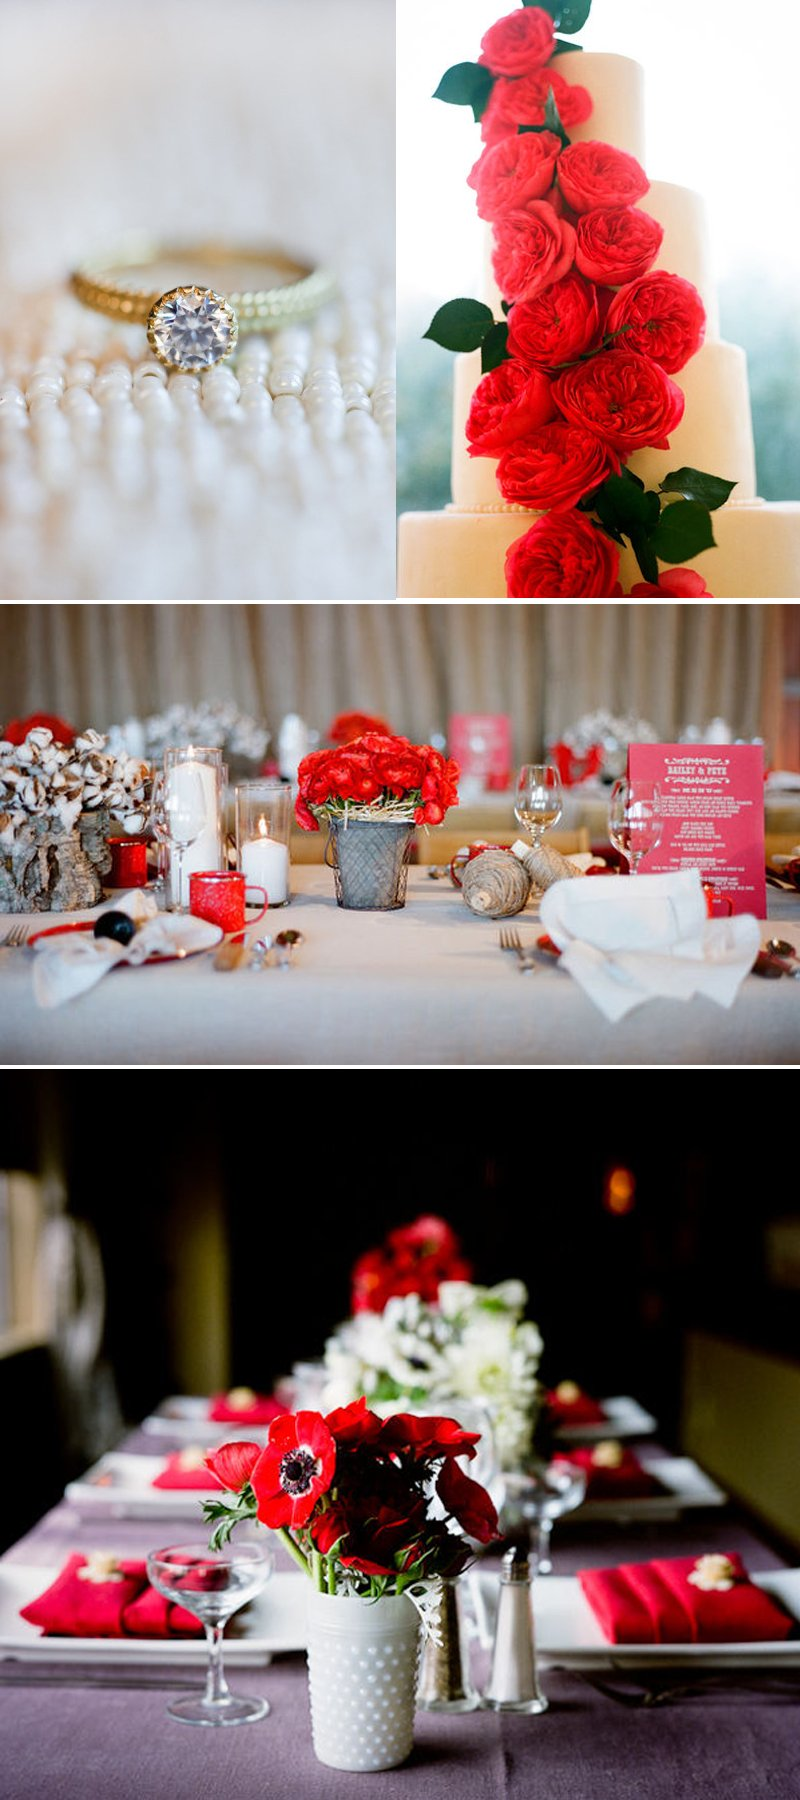 Wedding Color Ideas Red White Black Reception Flowers Decor